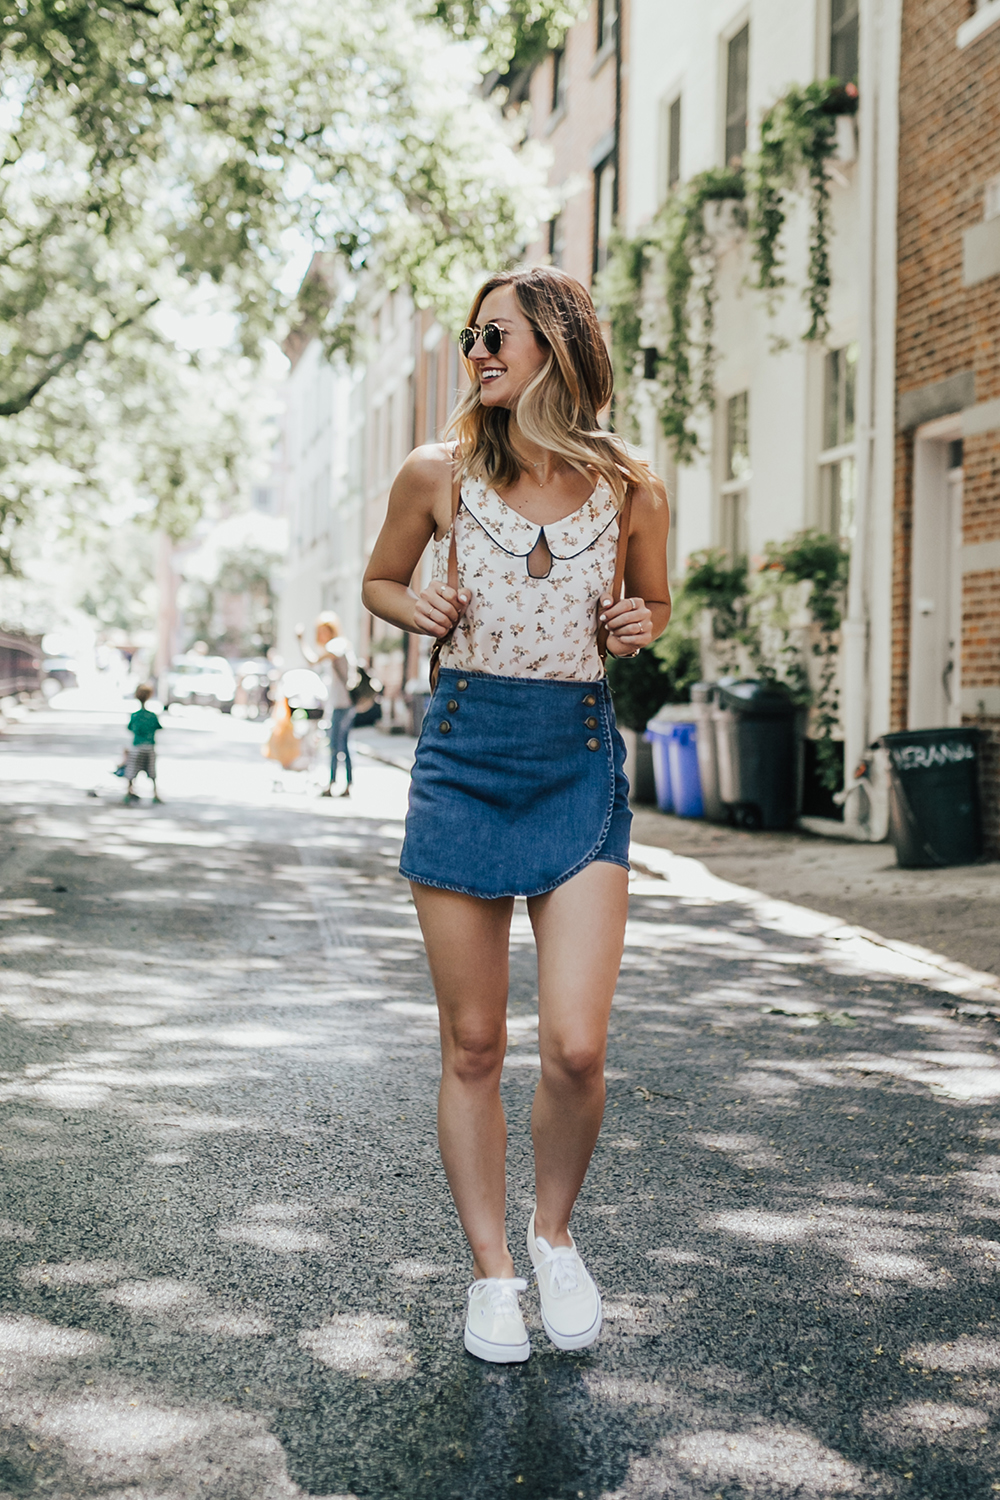 livvyland-blog-olivia-watson-new-york-city-cobble-hill-brooklyn-modcloth-skort-peter-pan-collar-top-vans-classic-sneakers-summer-outfit-13